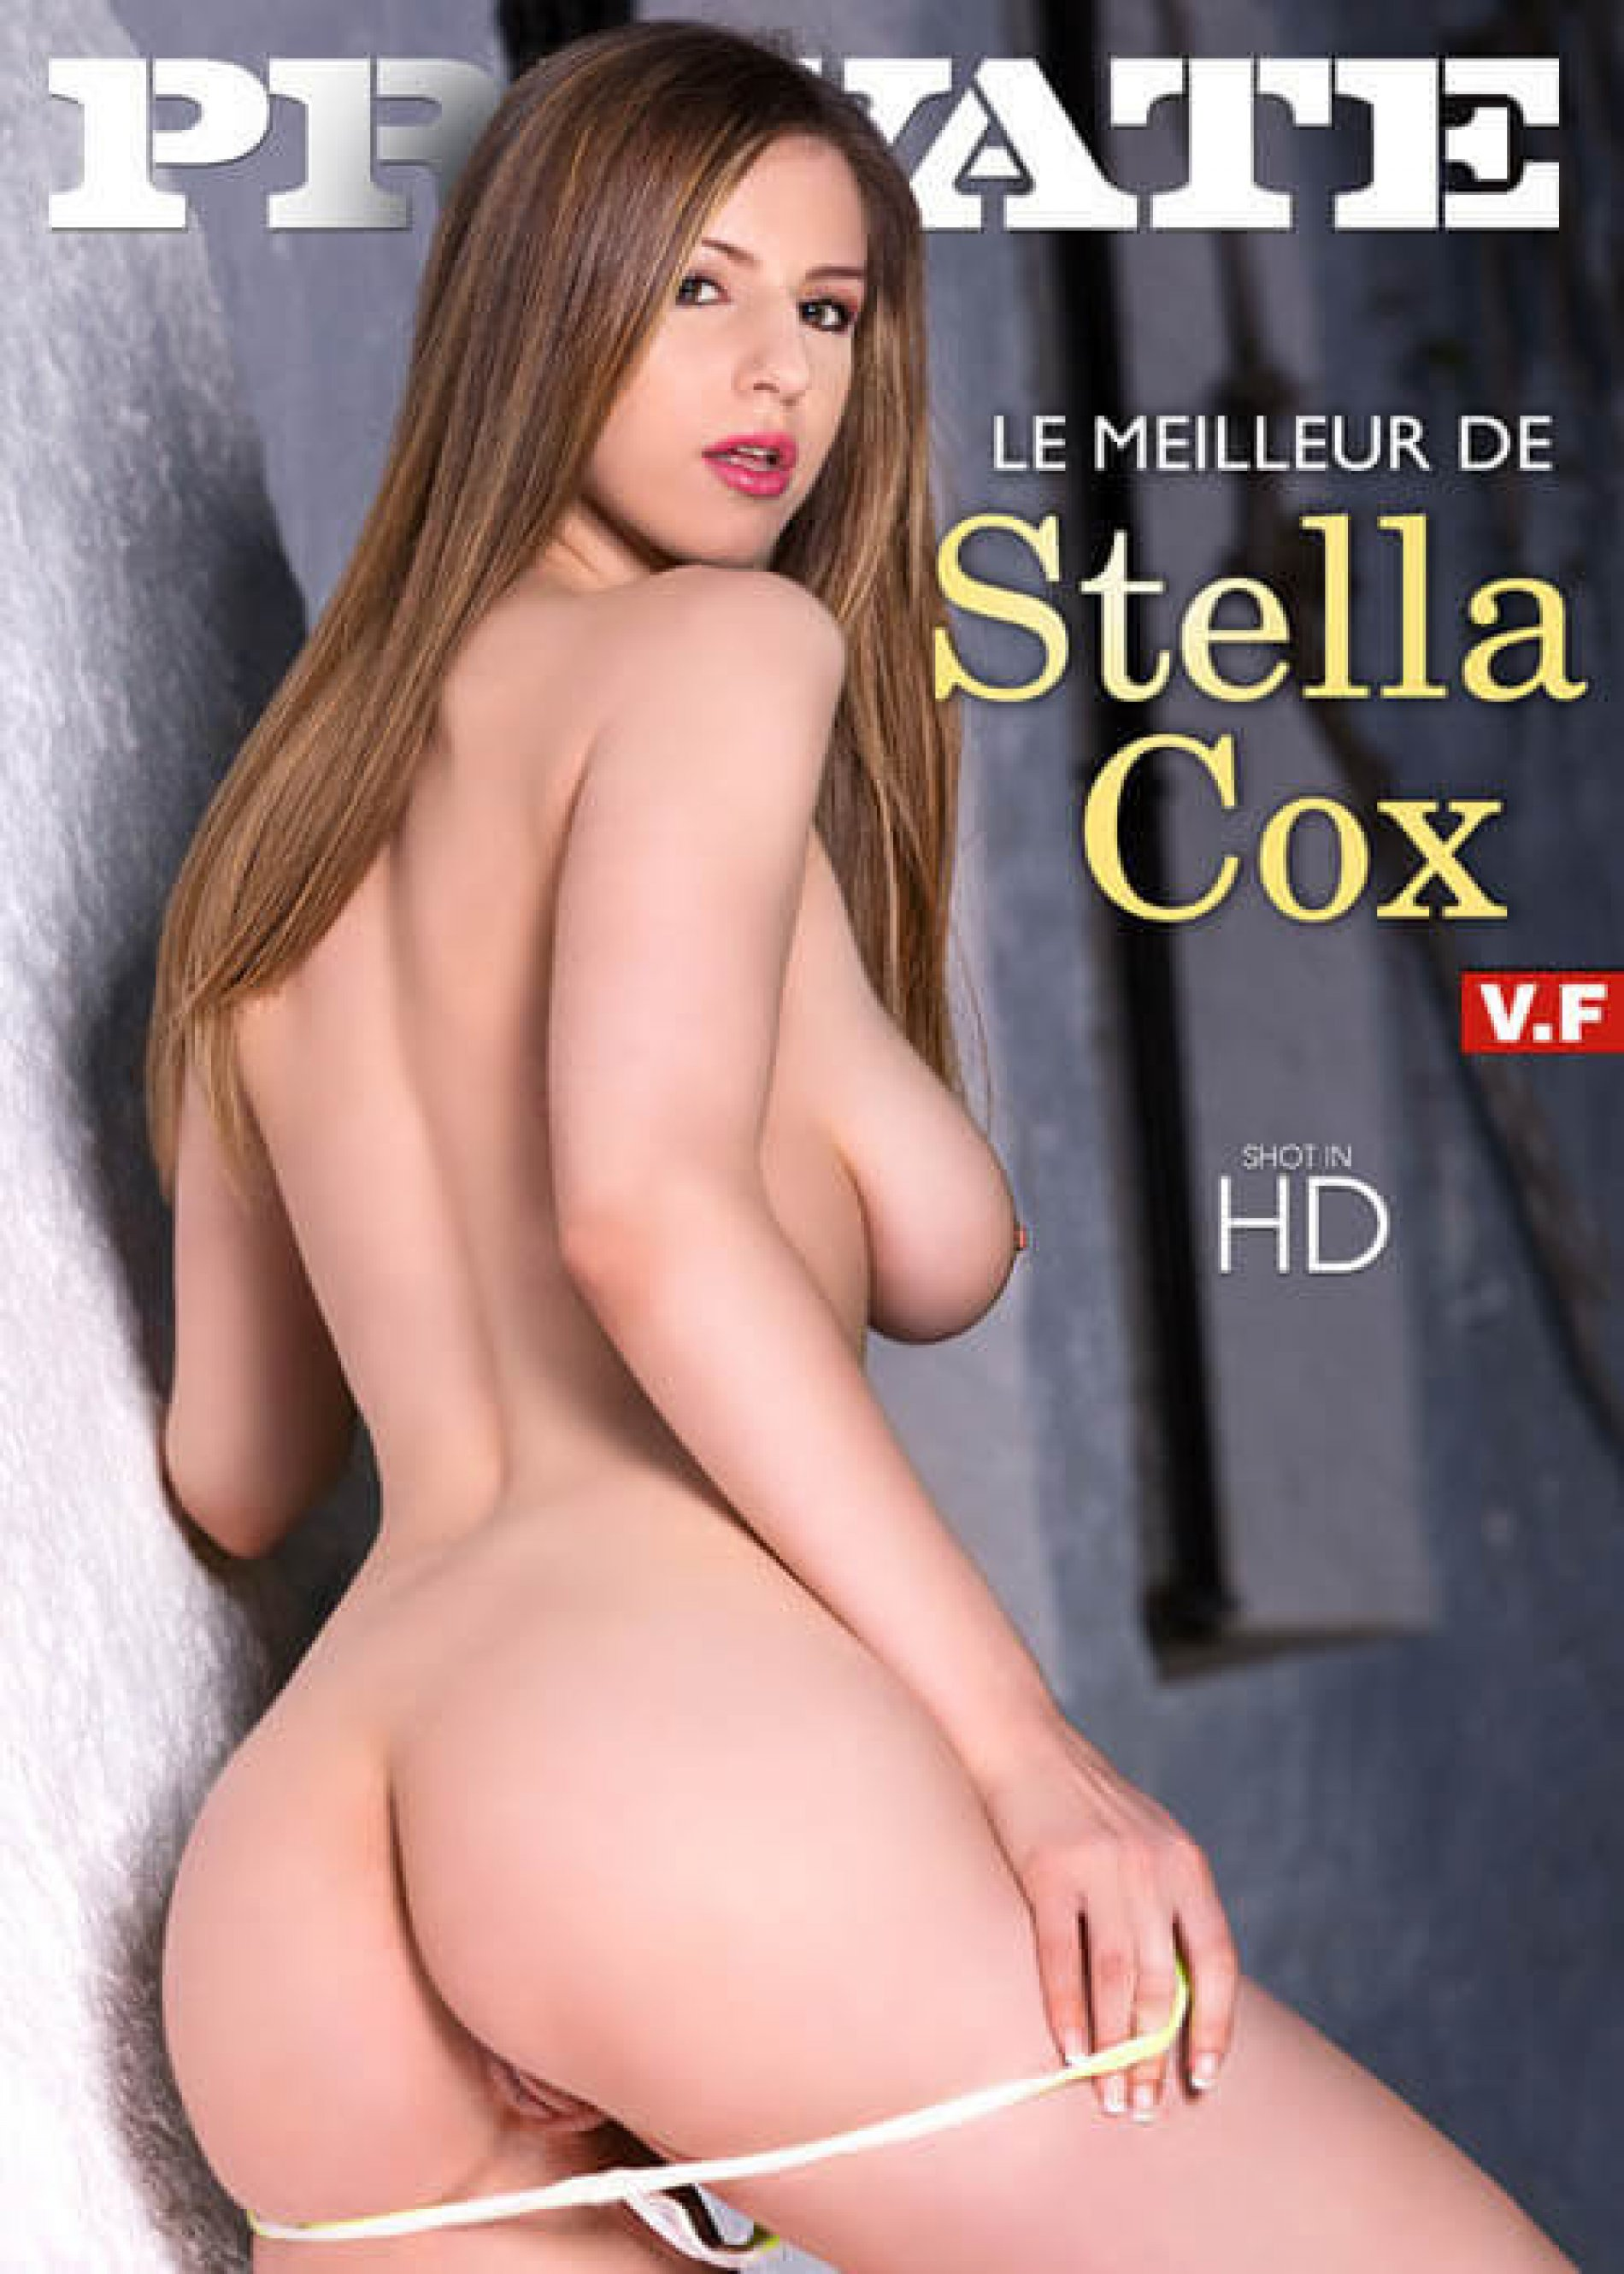 The best of Stella Cox